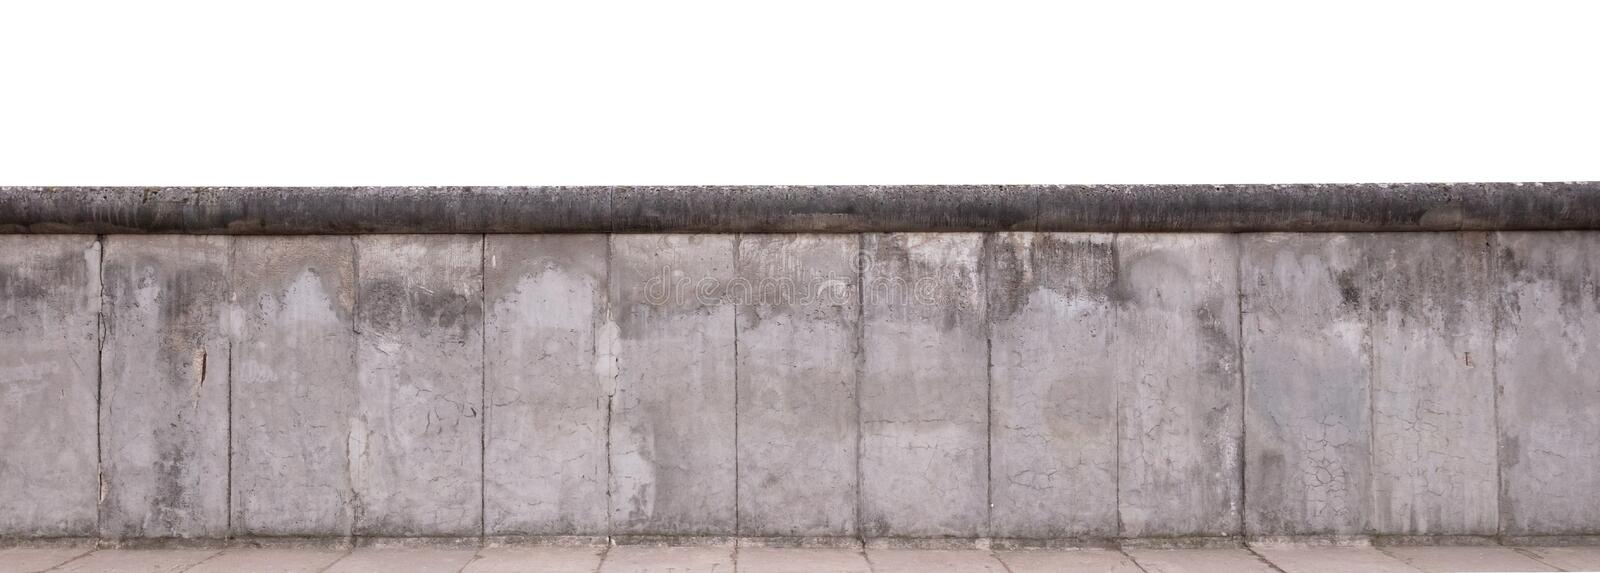 The remains of the Berlin Wall stock images